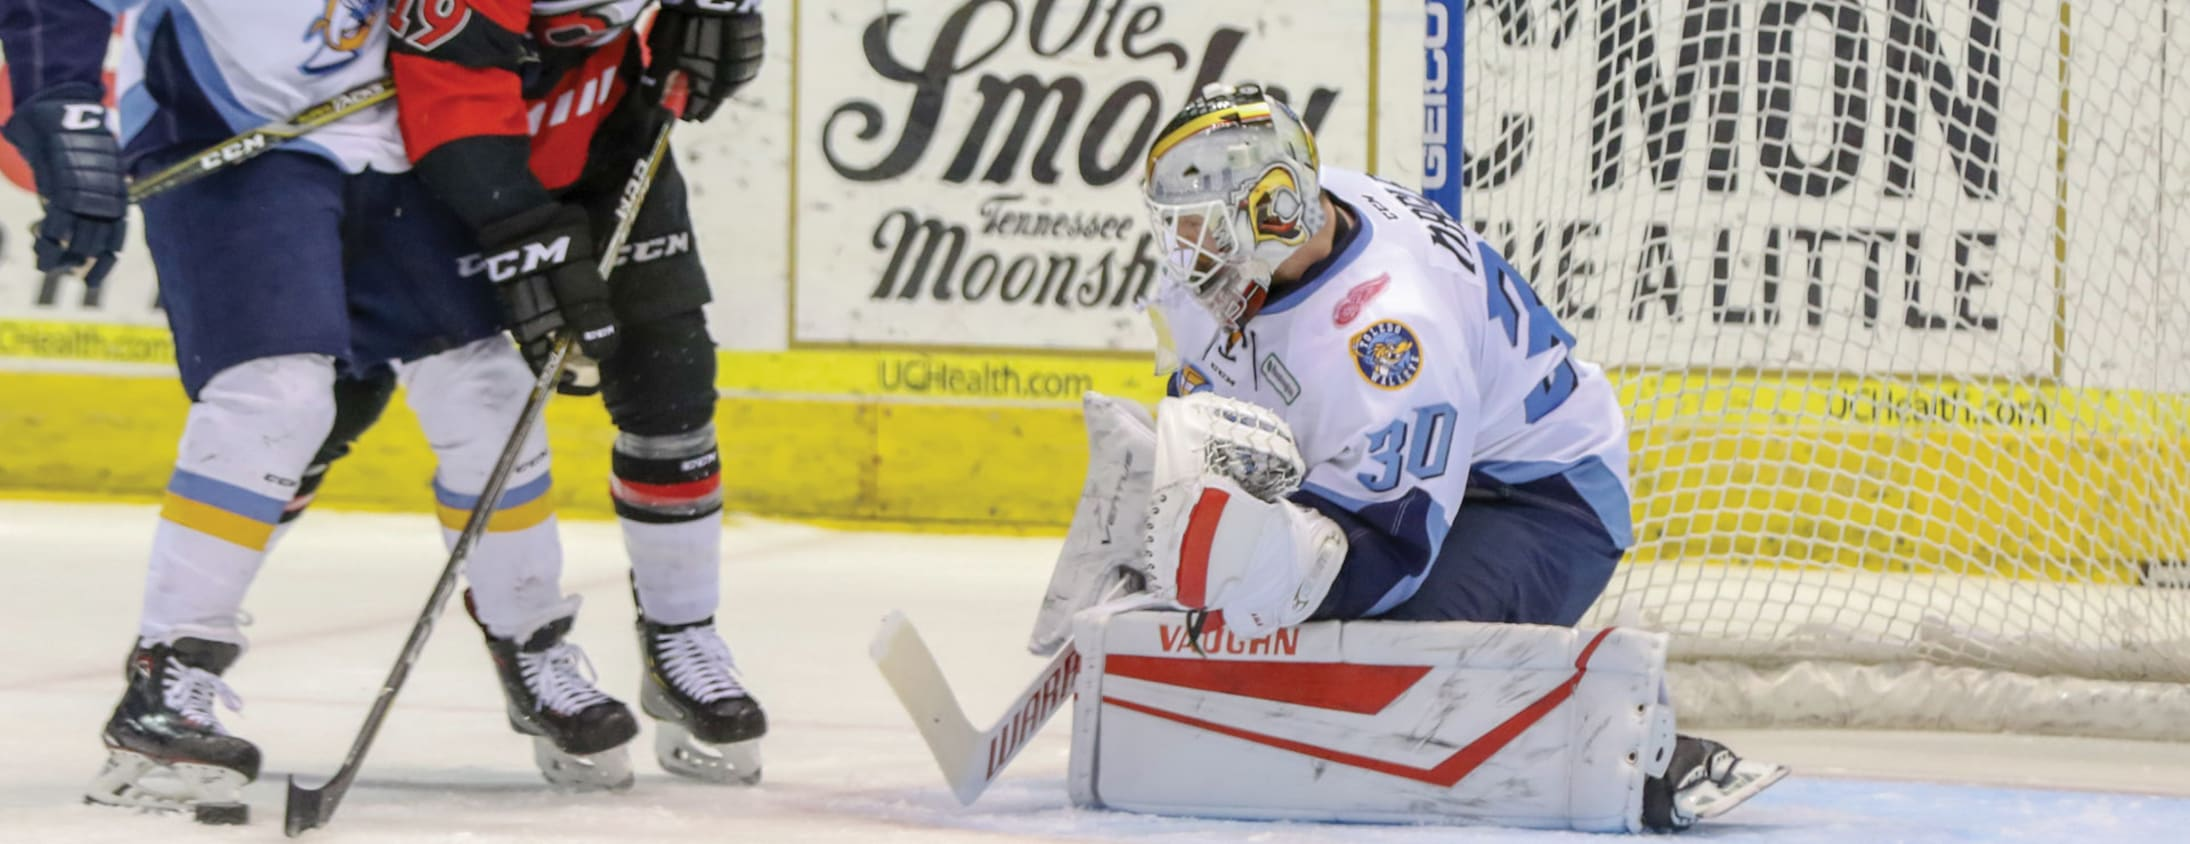 Walleye Prevail In Game 5 To Reach Conference Finals